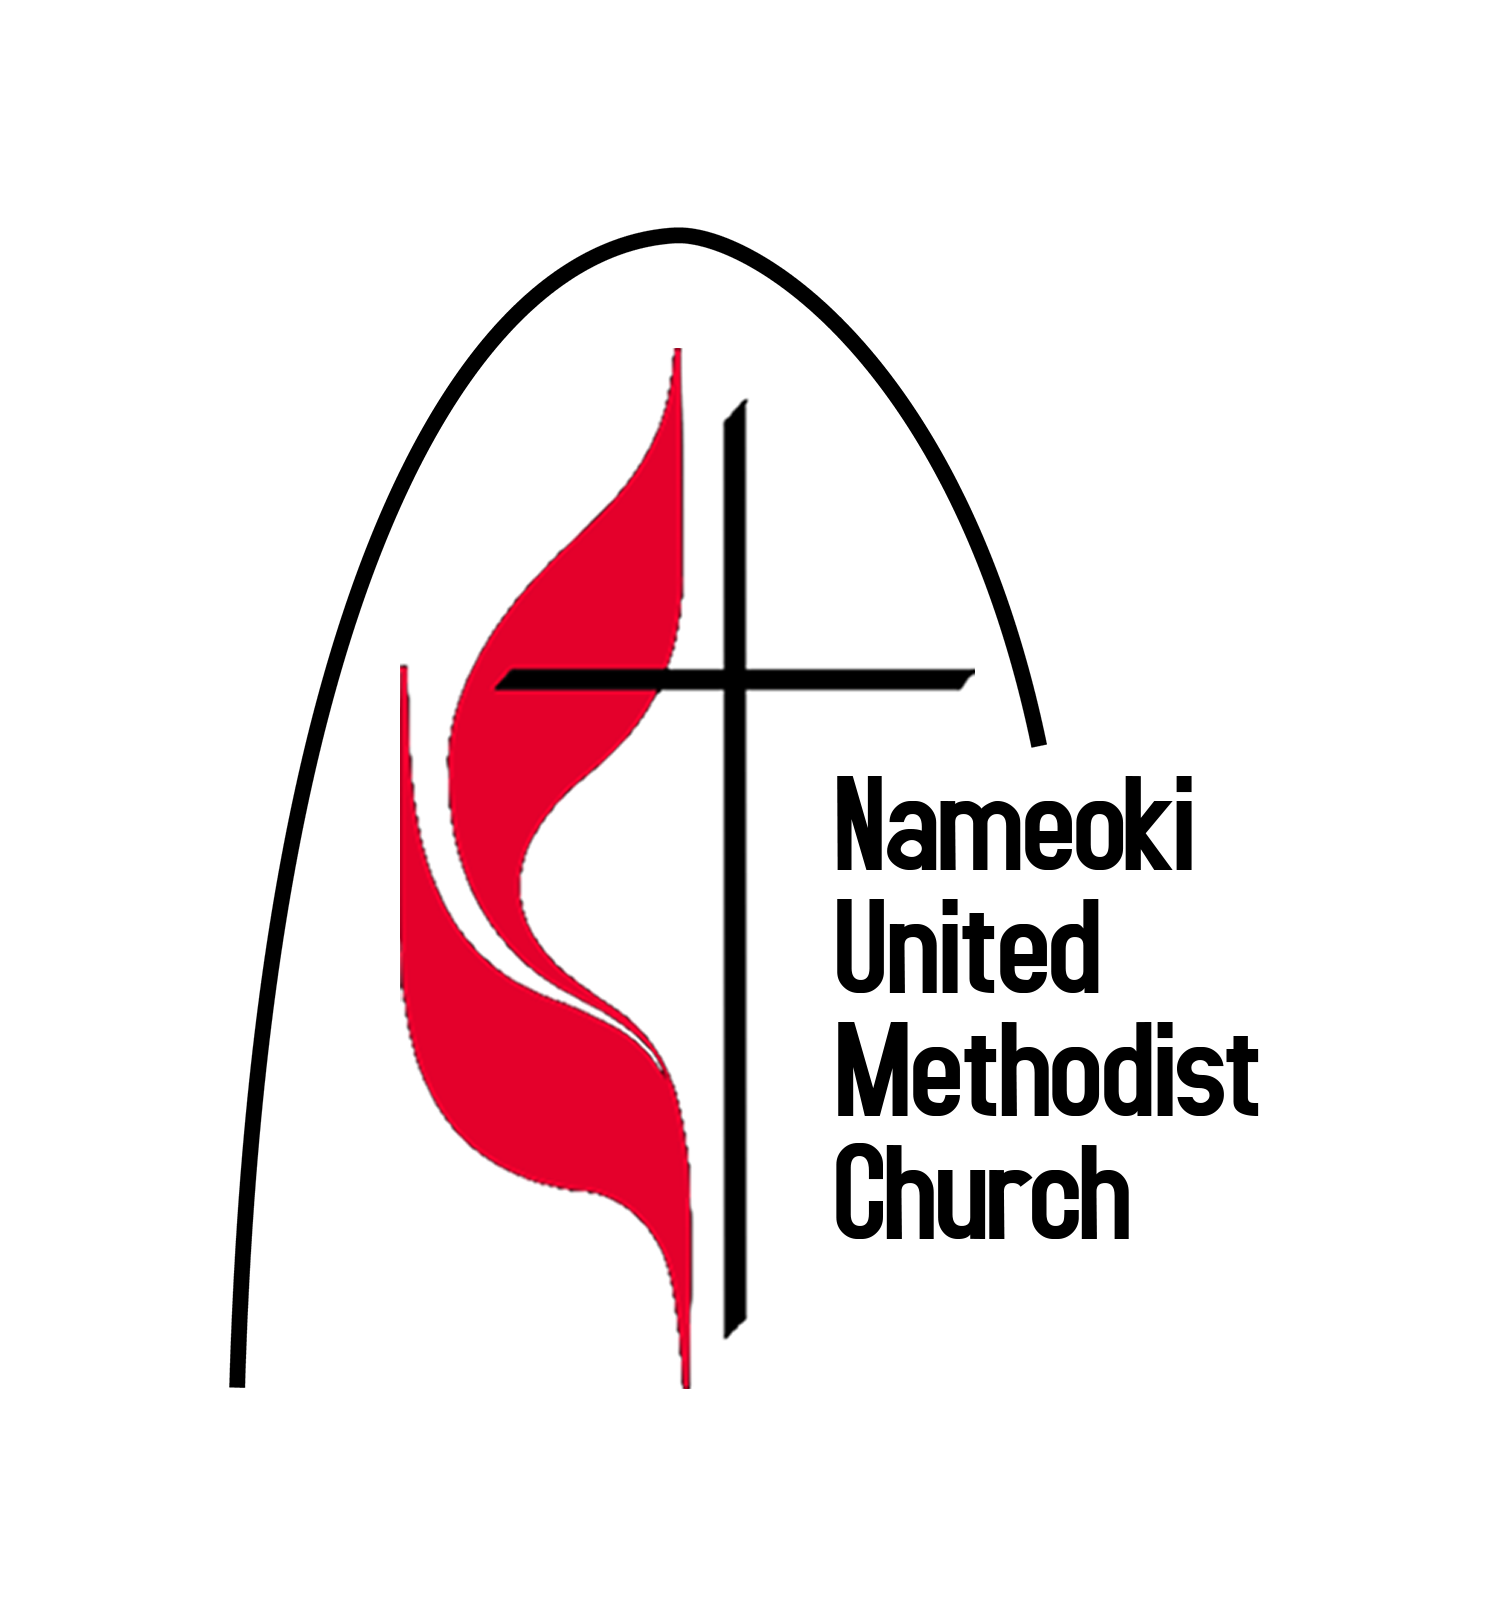 Nameoki United Methodist Church